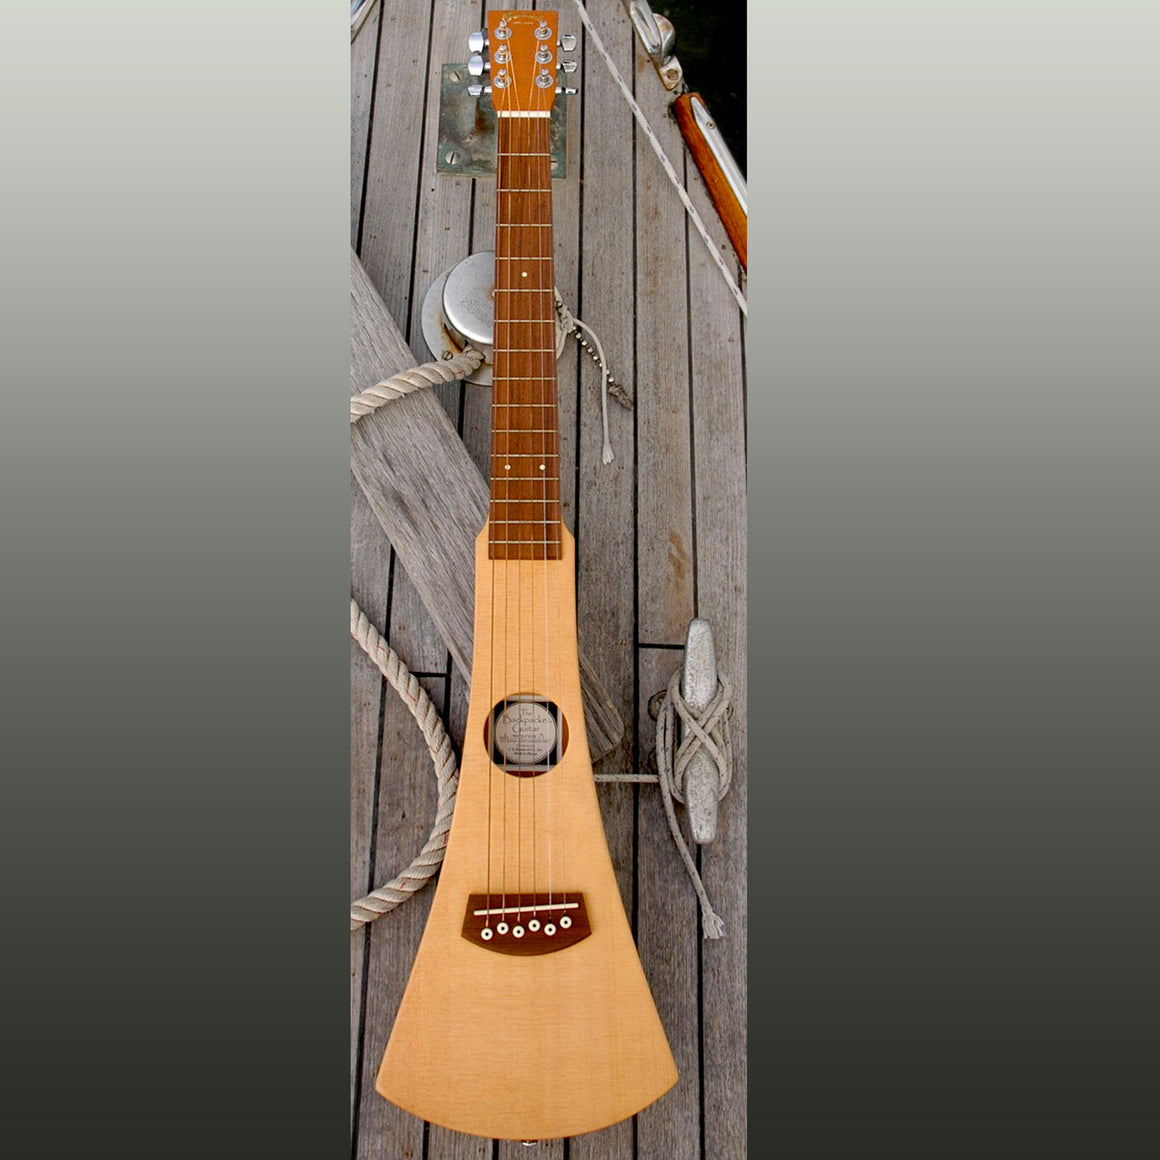 The Backpacker Guitar